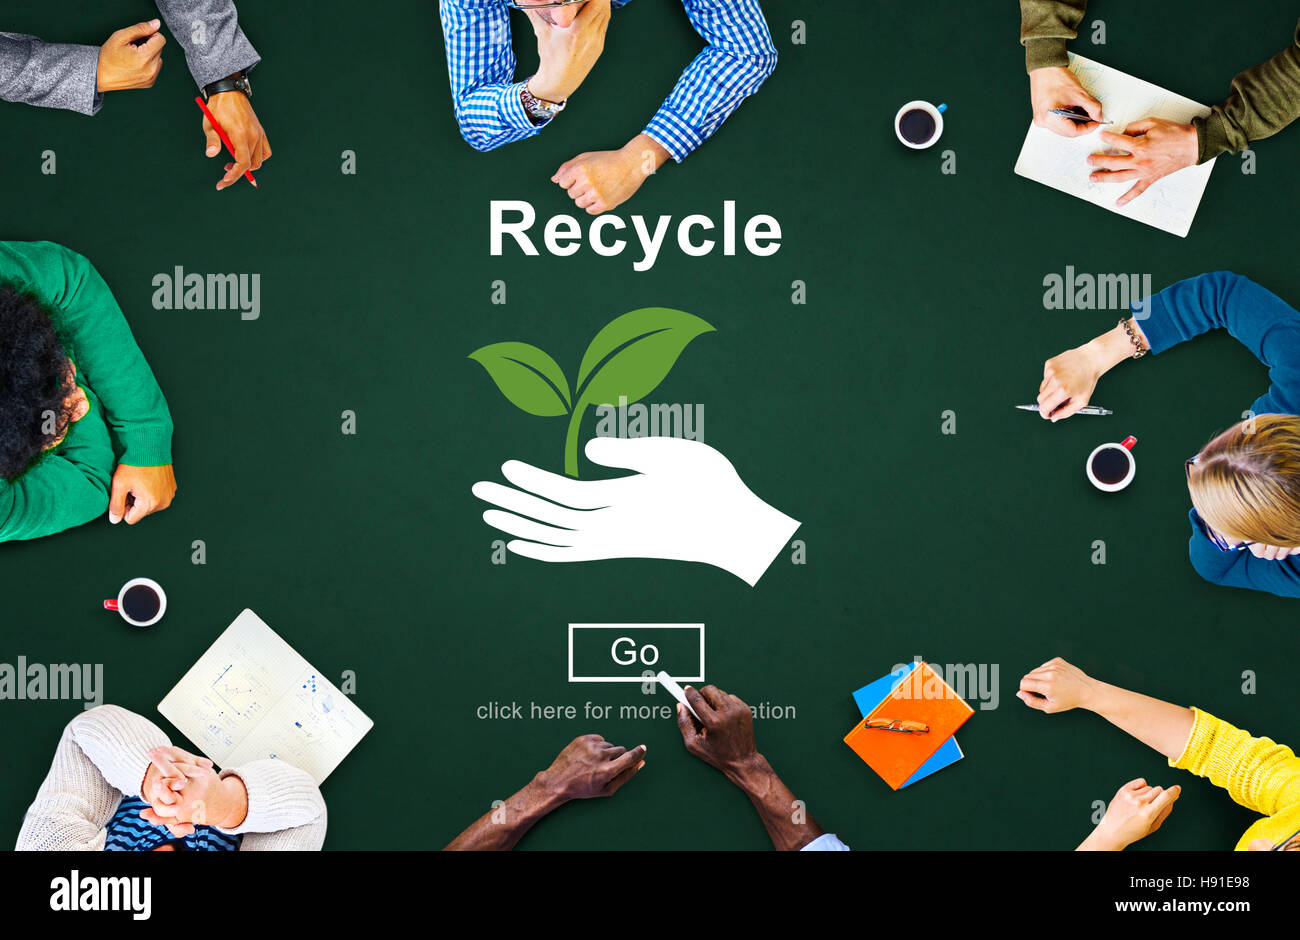 Recycle Reuse Reduce Ecosystem Environment Concept - Stock Image